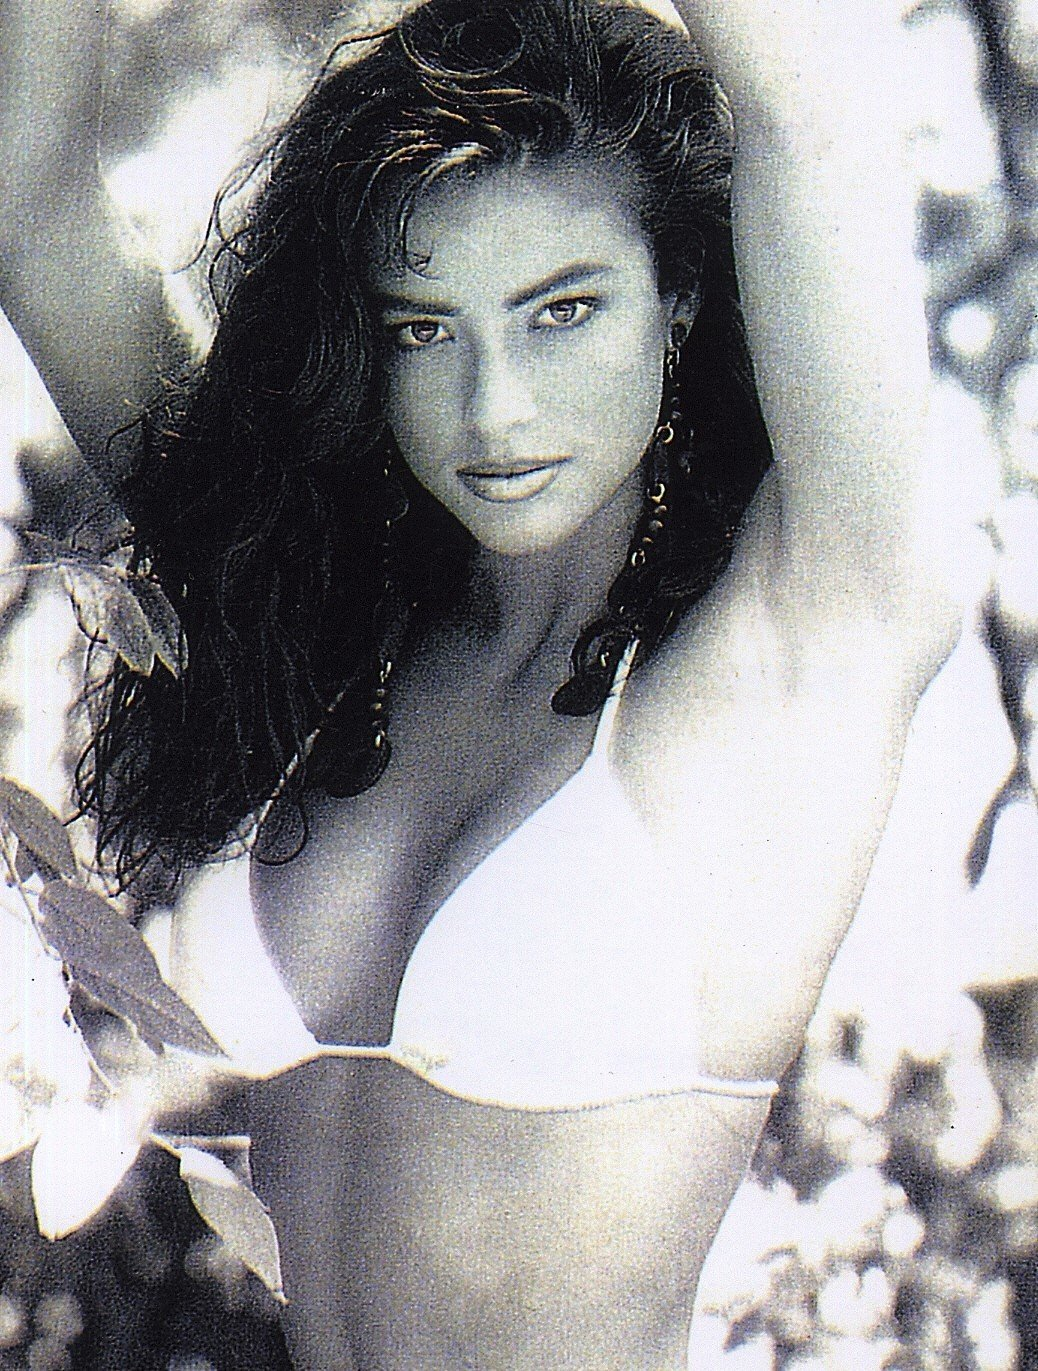 MISS SC-USA --  DANIELLE CORLEY  She was also a successful covergirl and actress in Hollywood.